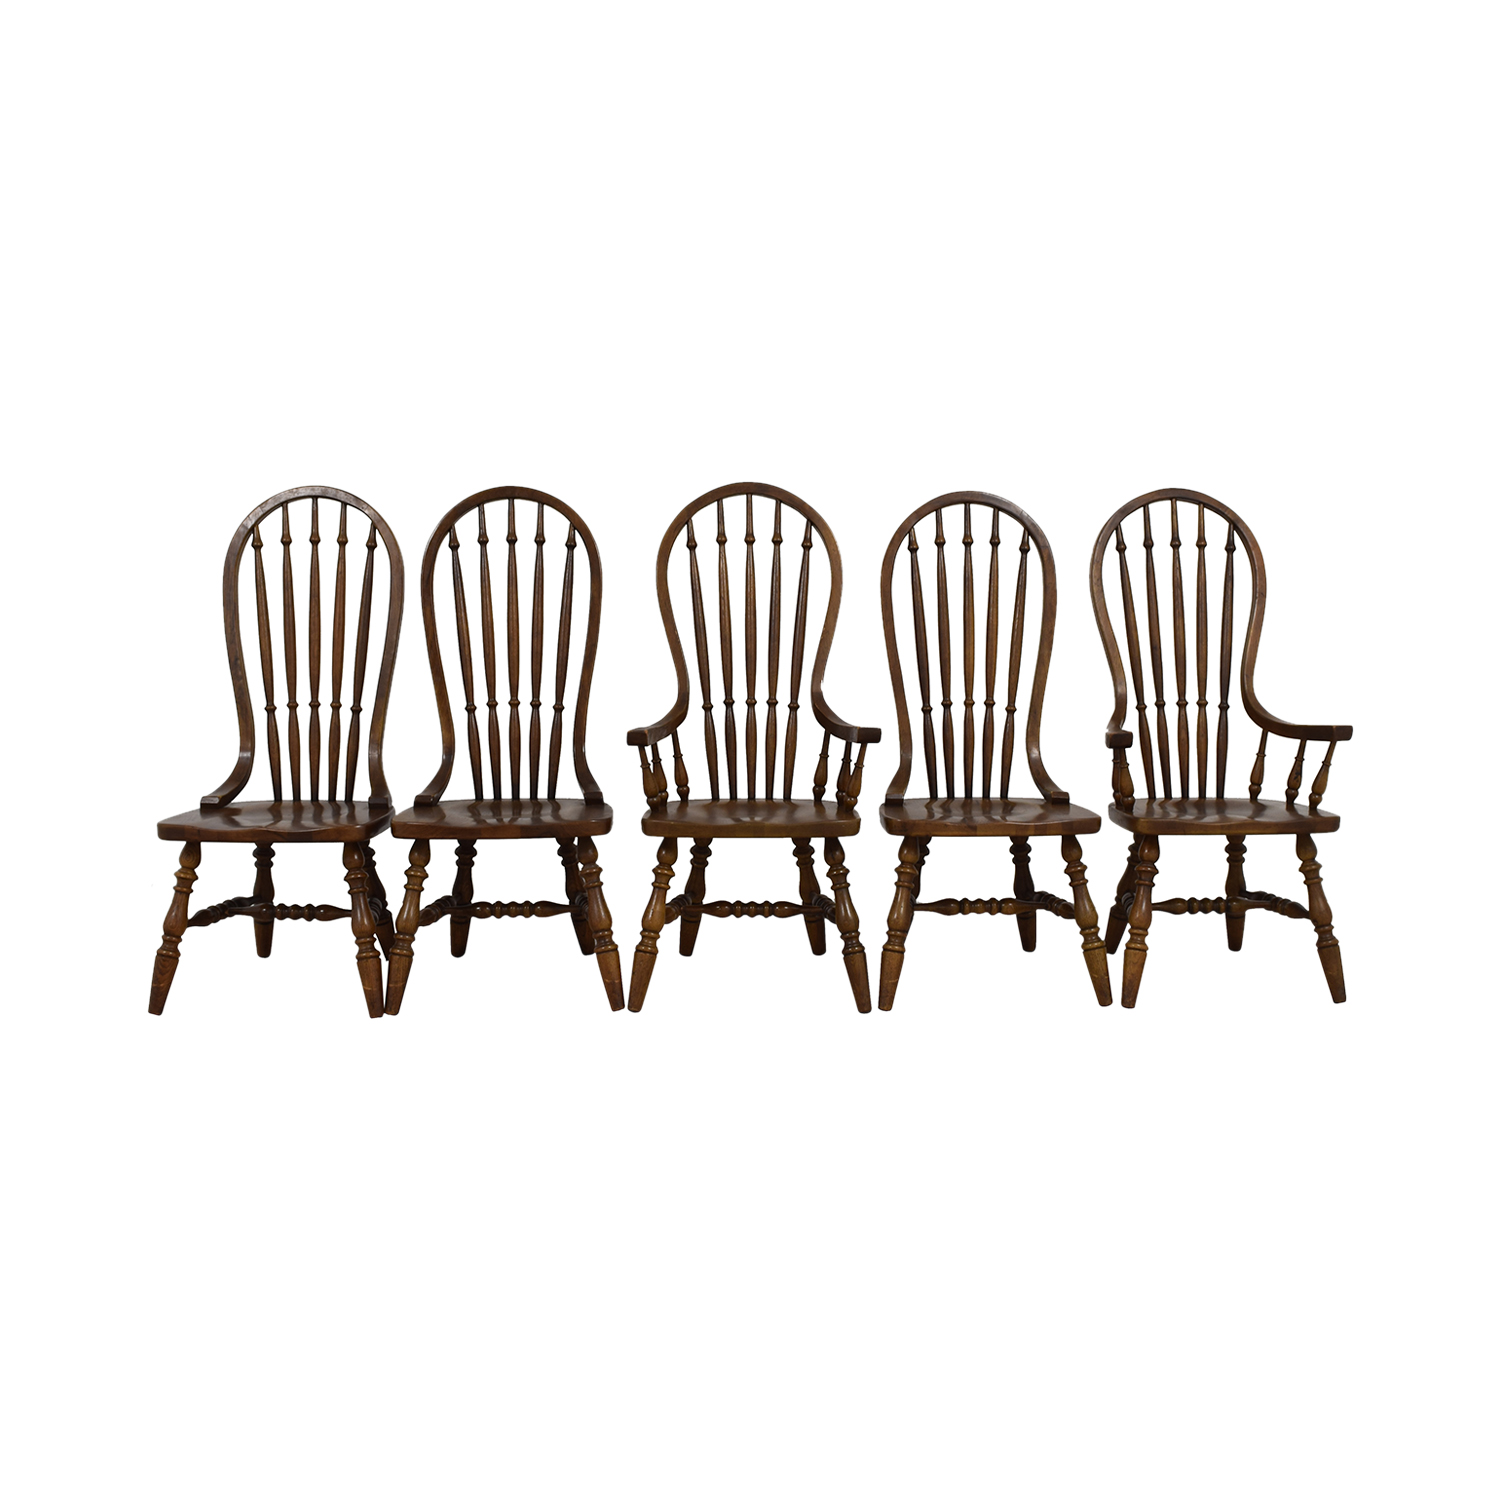 Antique Oak Spindle Dining Chairs dimensions